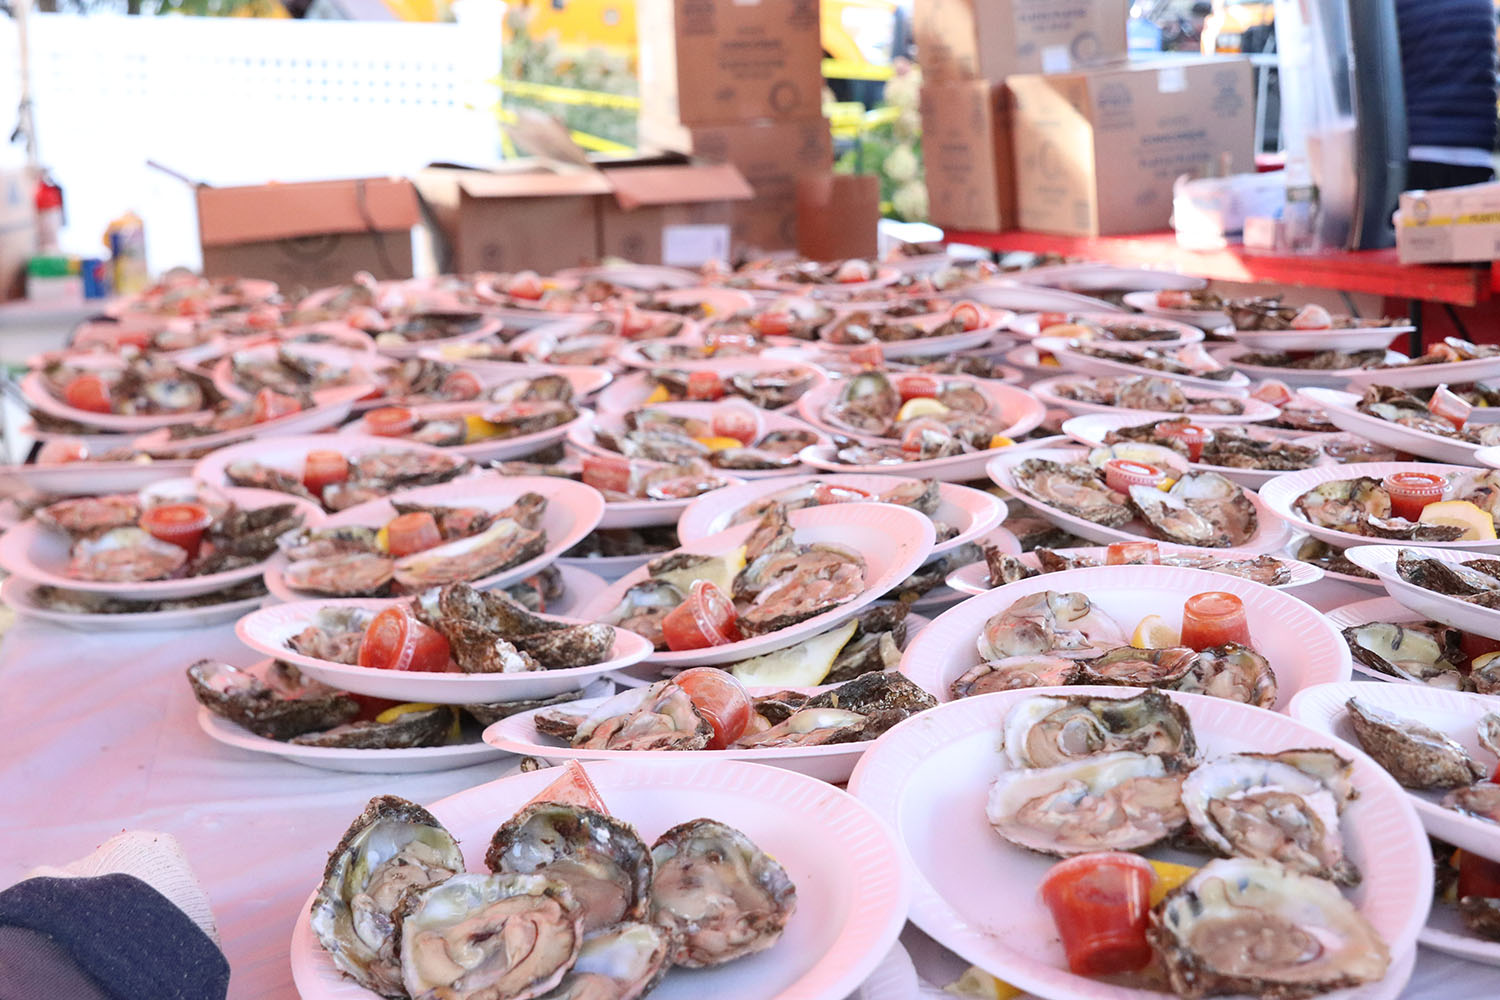 Photo Gallery: 35th Annual Oyster Festival in Oyster Bay